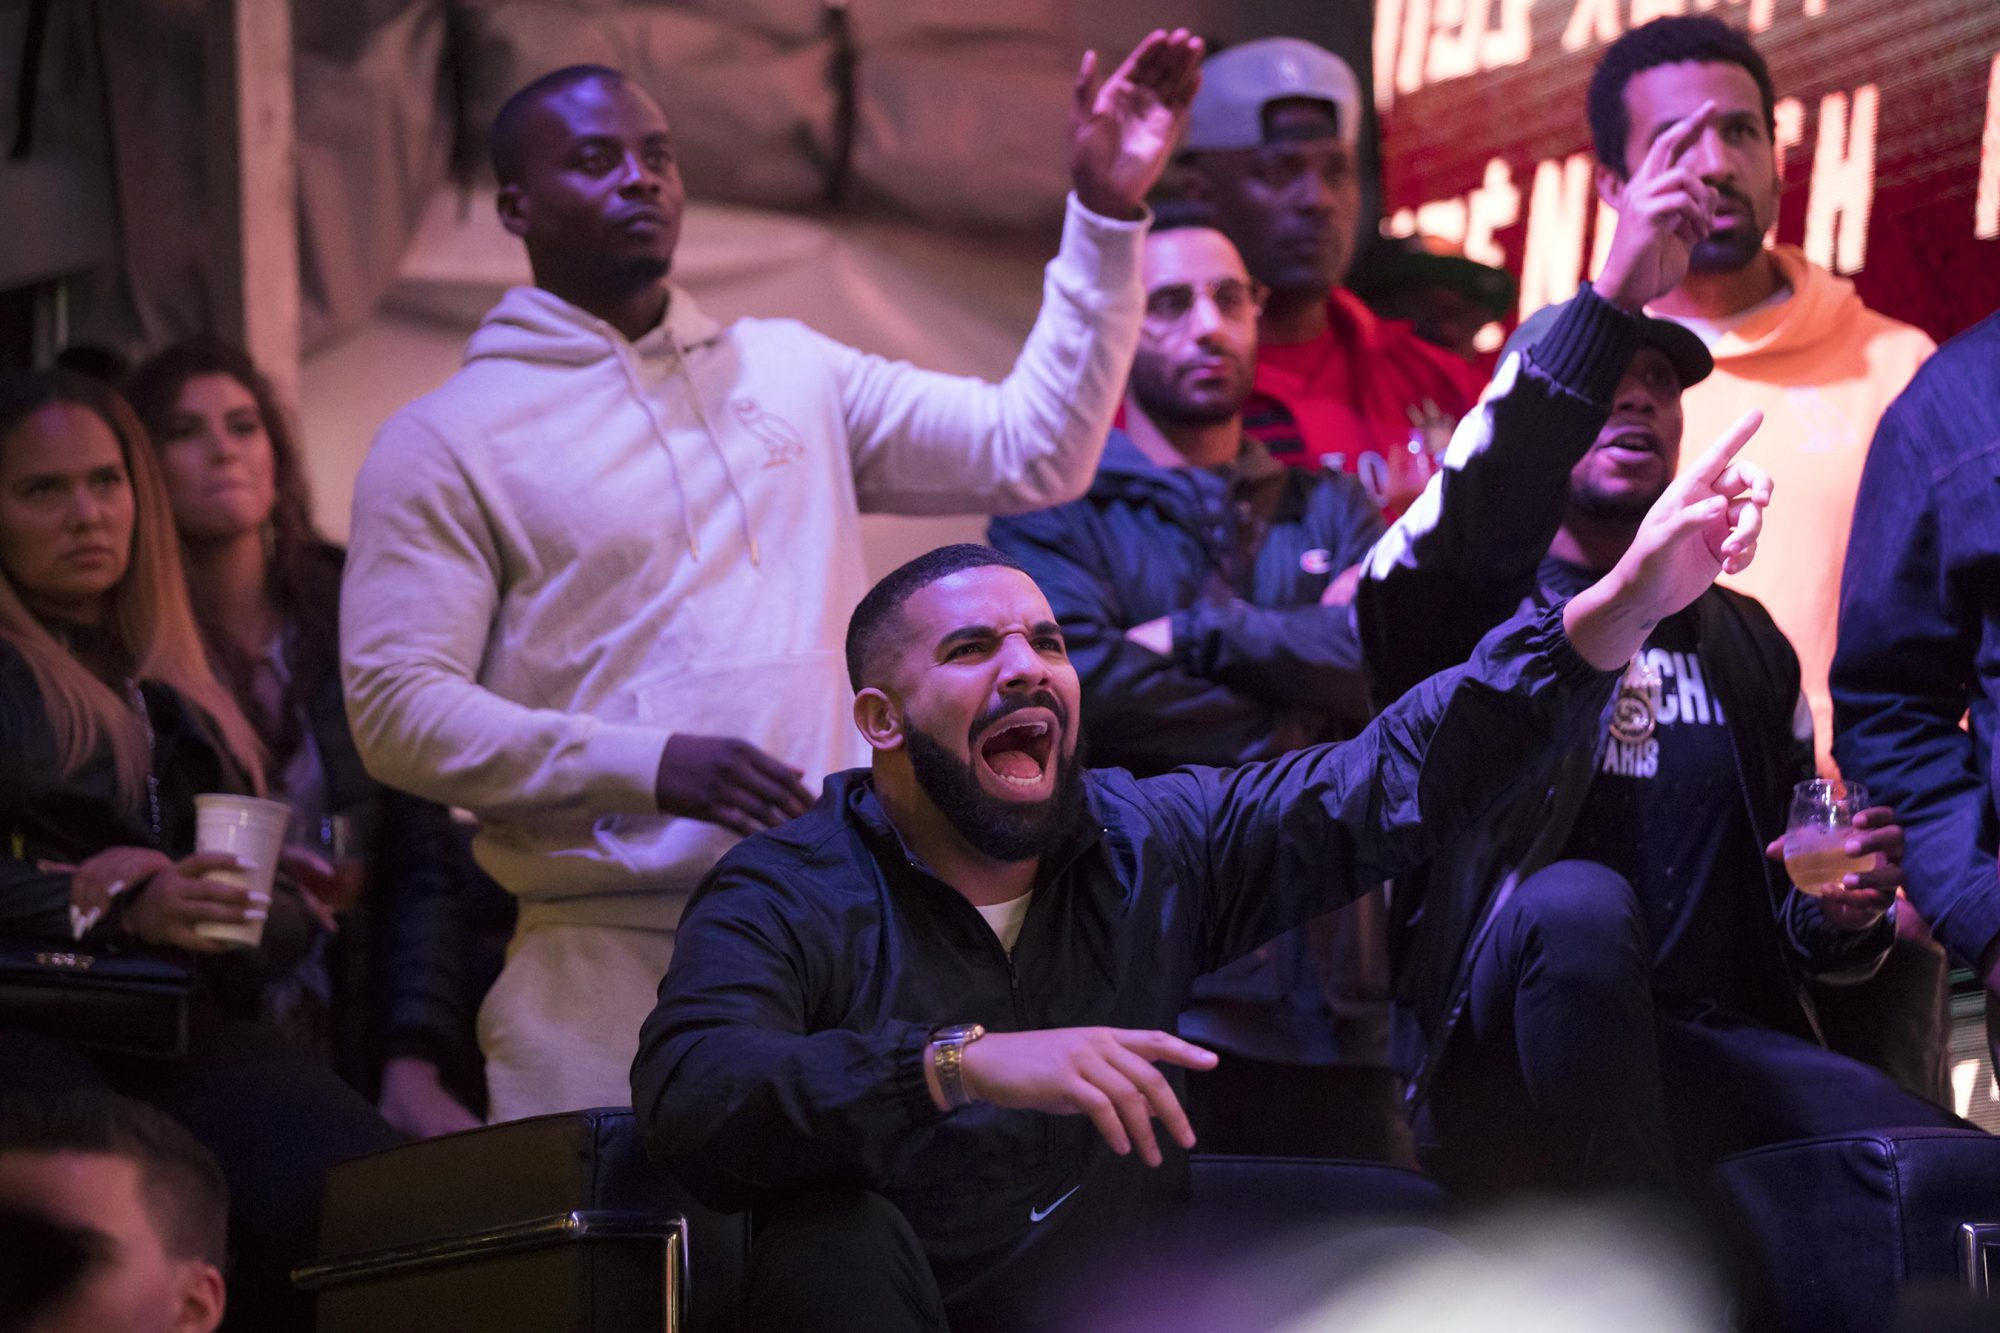 Toronto Fans Cheer On The Raptors At 'Jurassic Park' For Game Six Of The NBA Finals